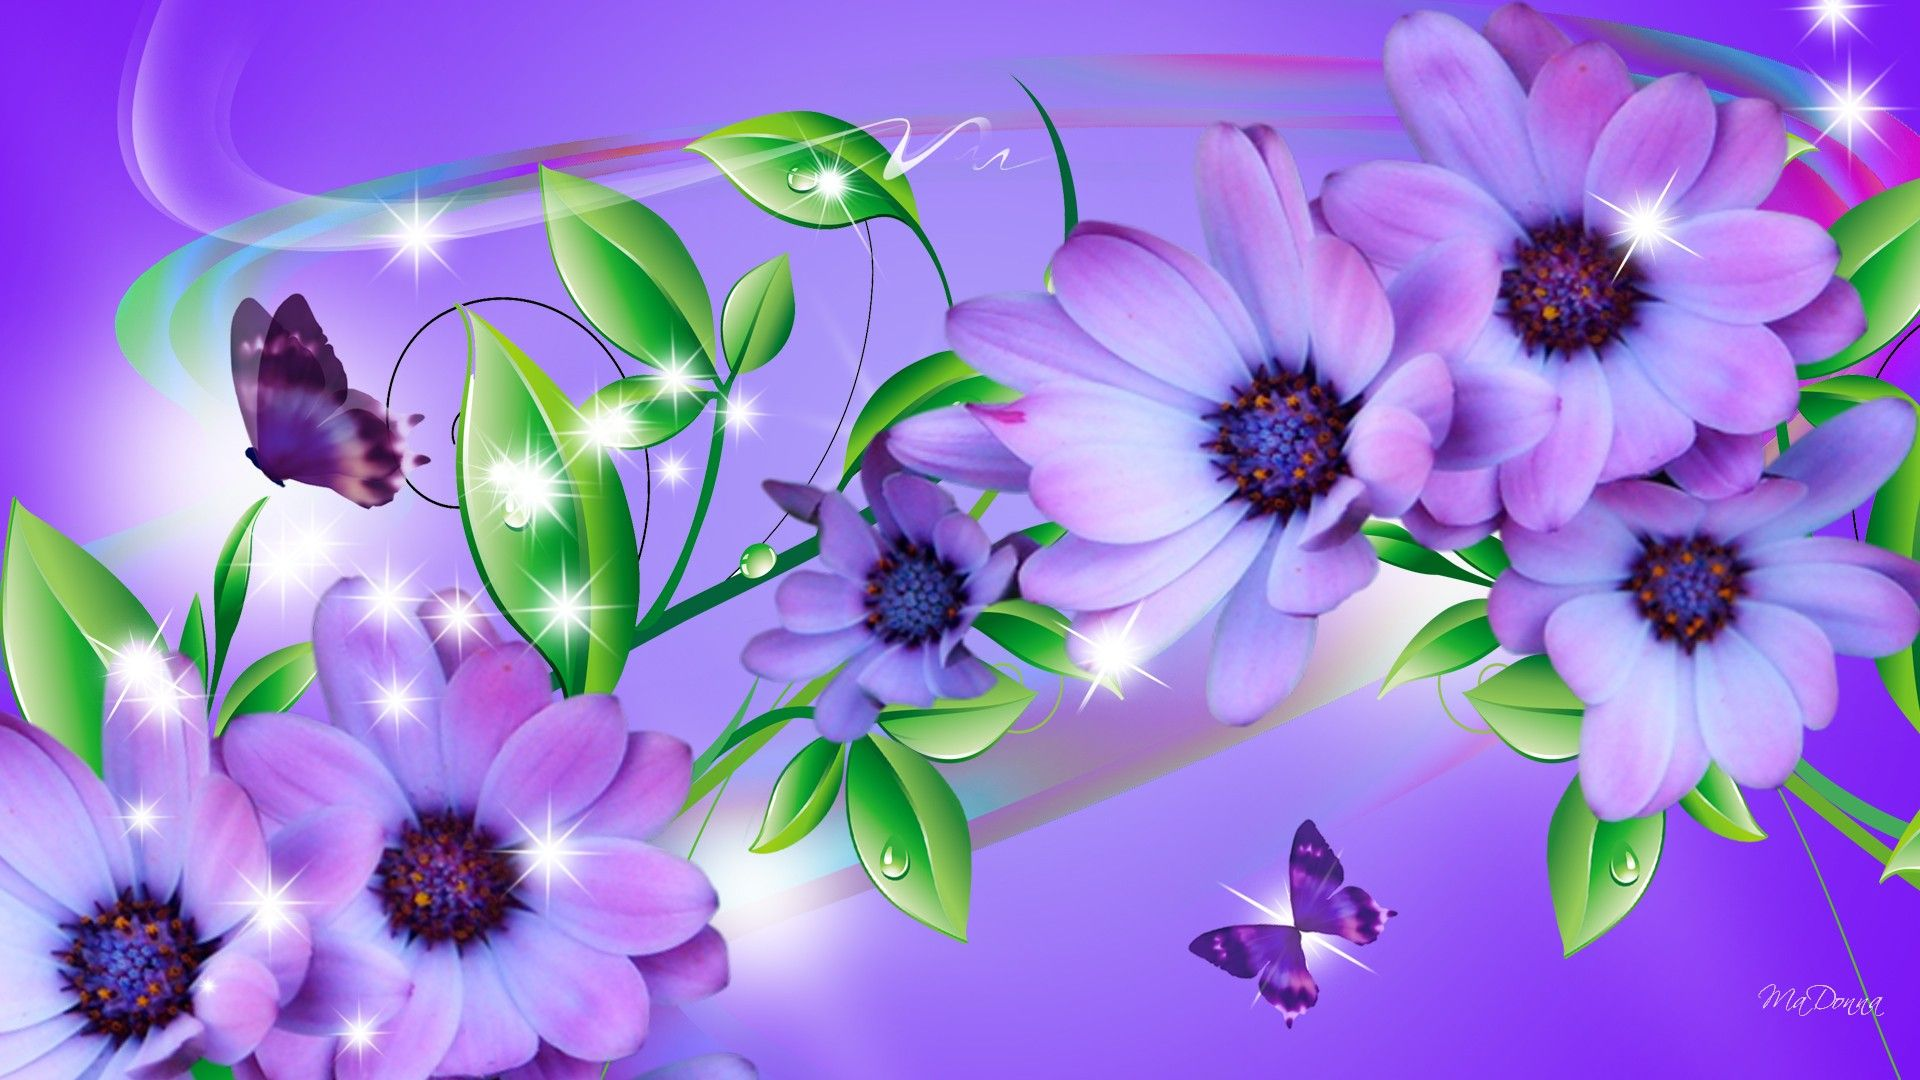 rainbow flowers wallpaper paintings - photo #31